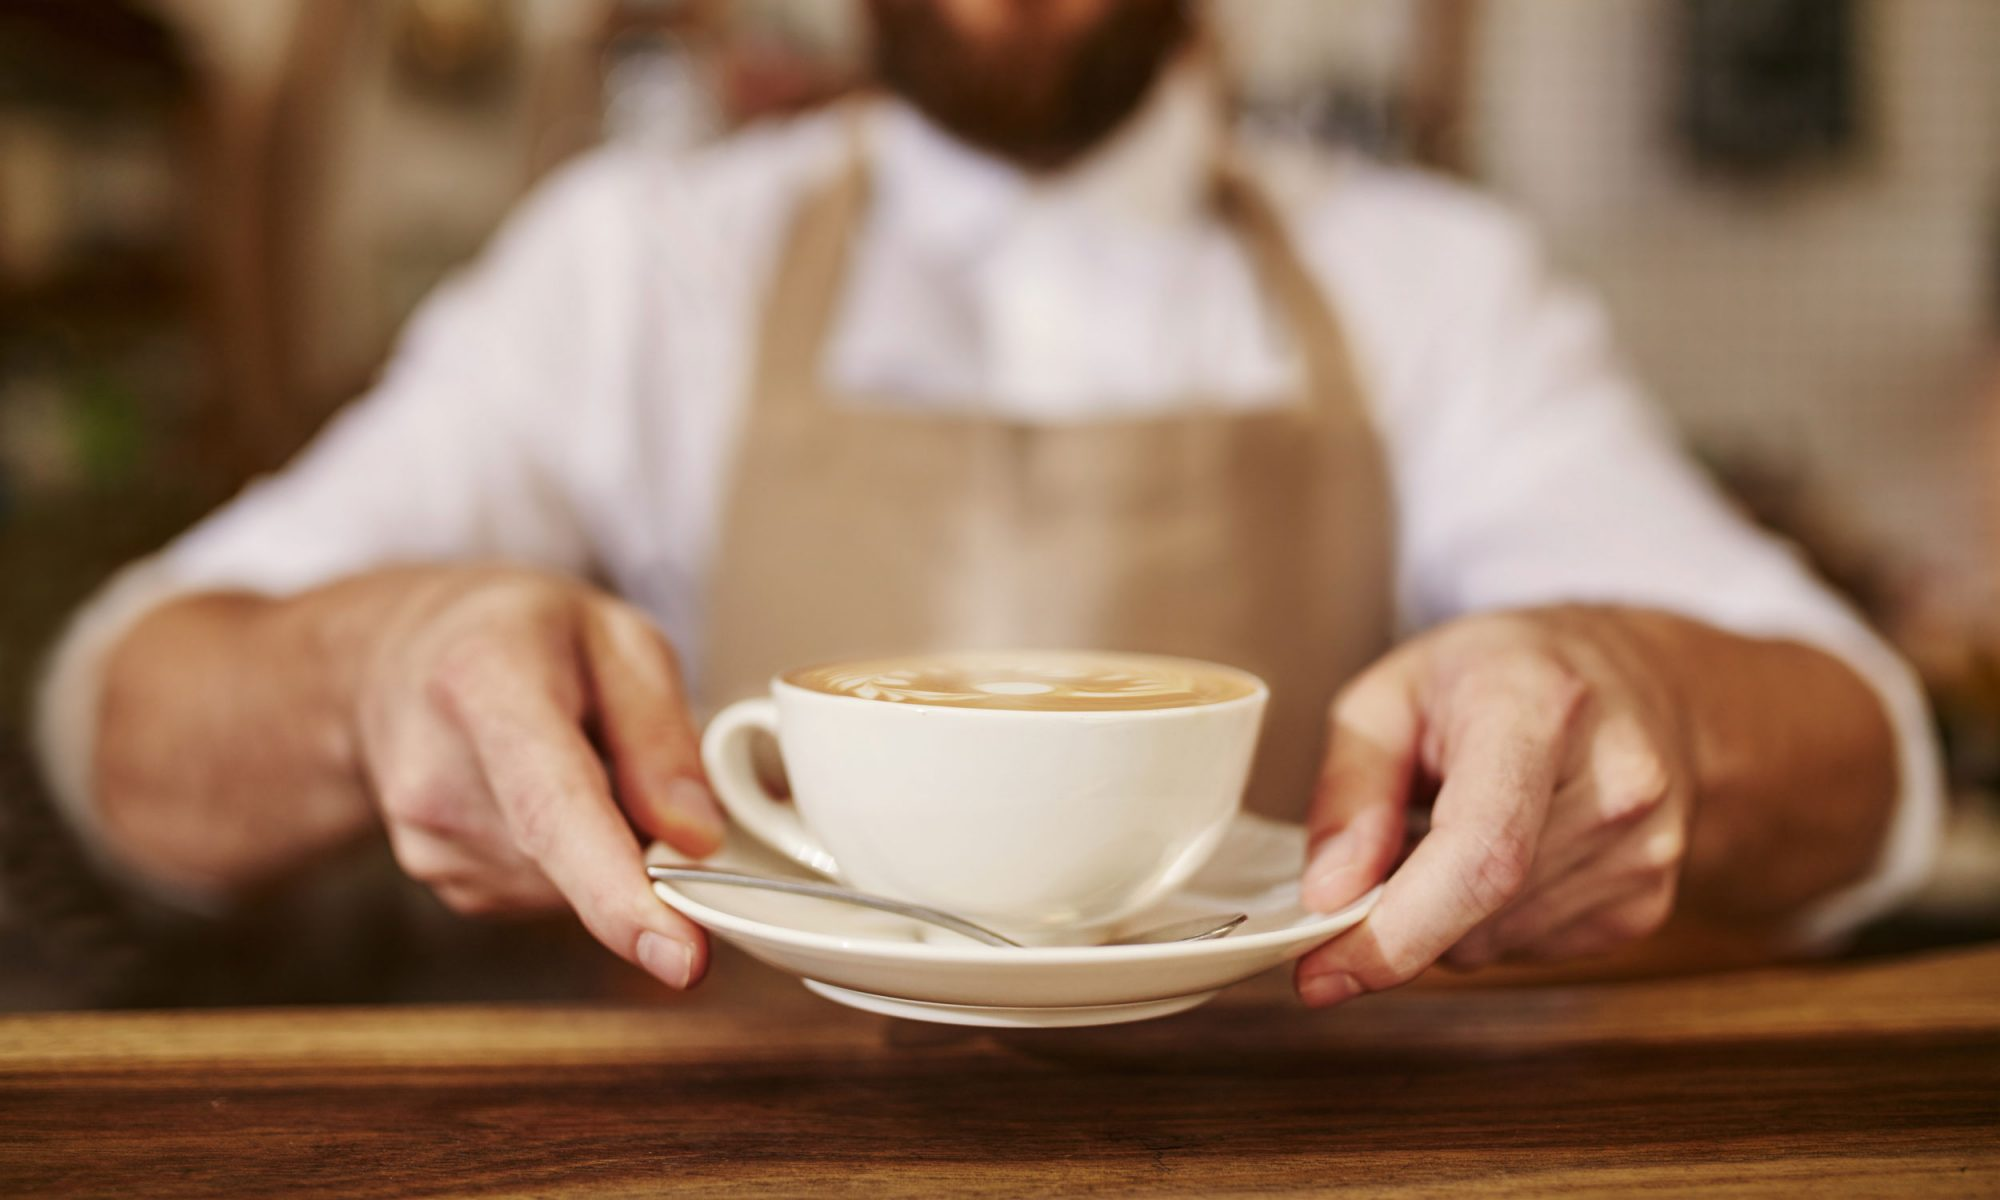 EC: 5 Things You Learn Working at a Coffee Shop